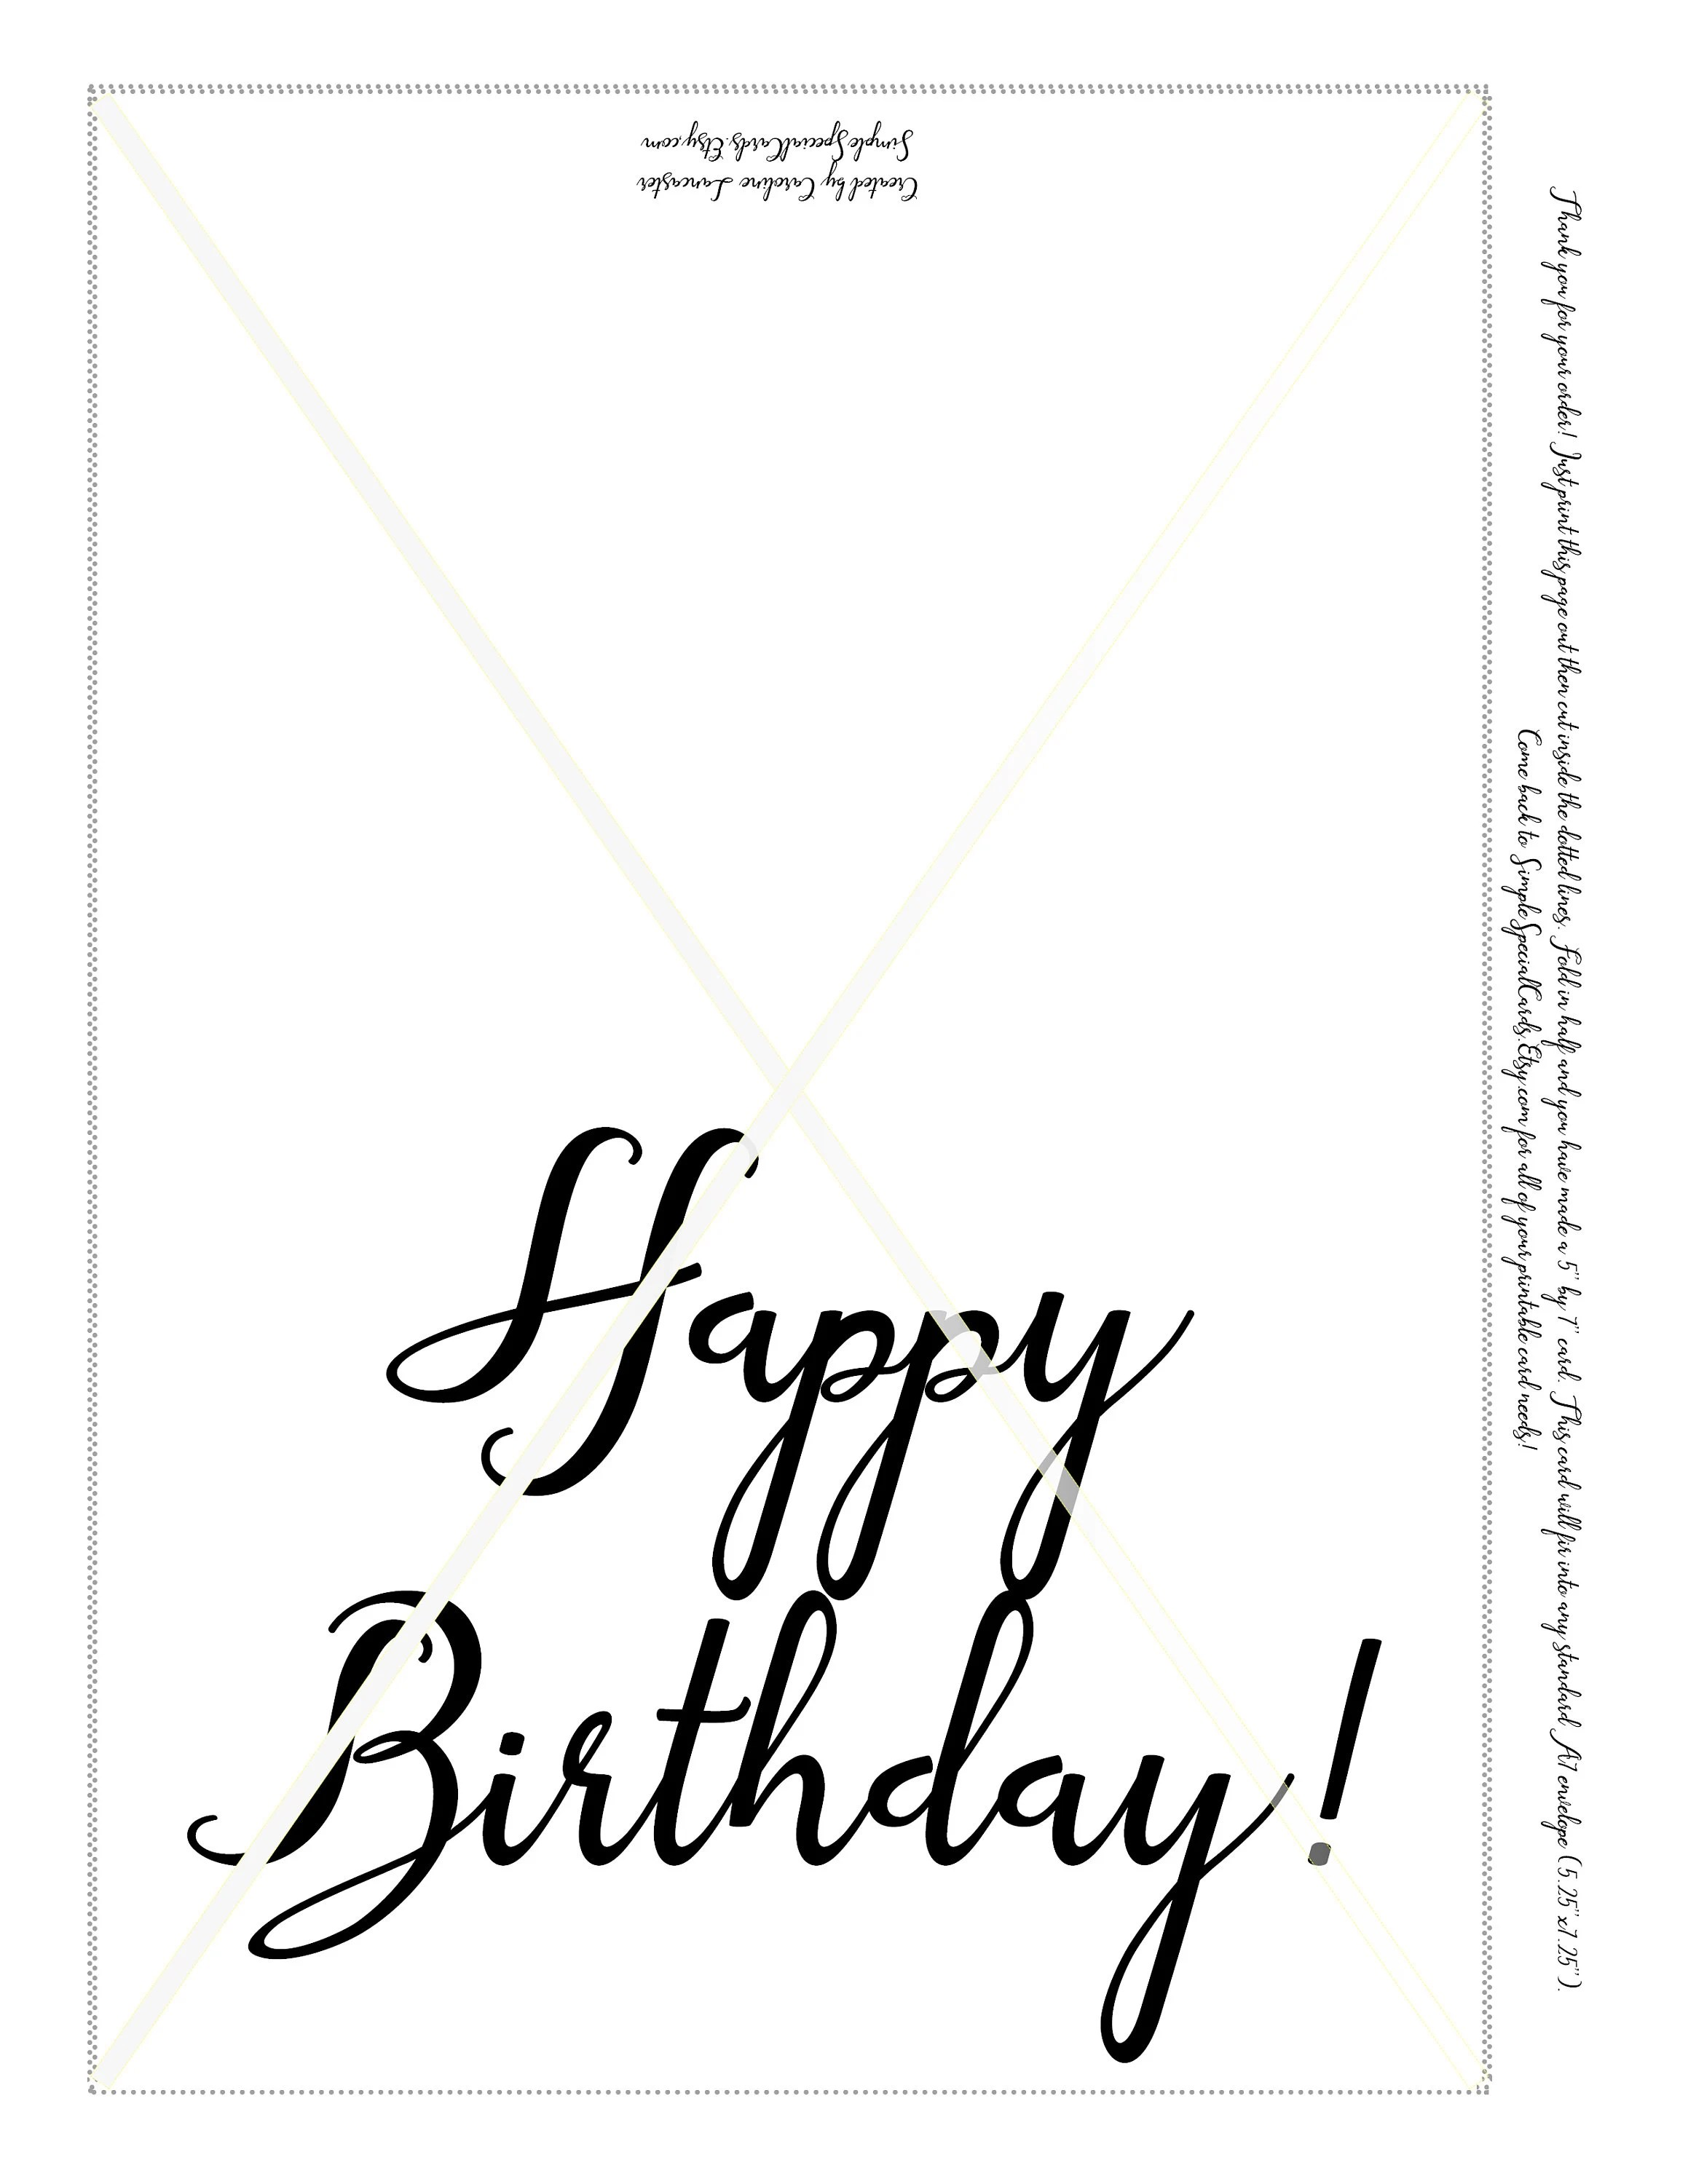 Printable Birthday Card Black and White Simple Birthday Card Etsy